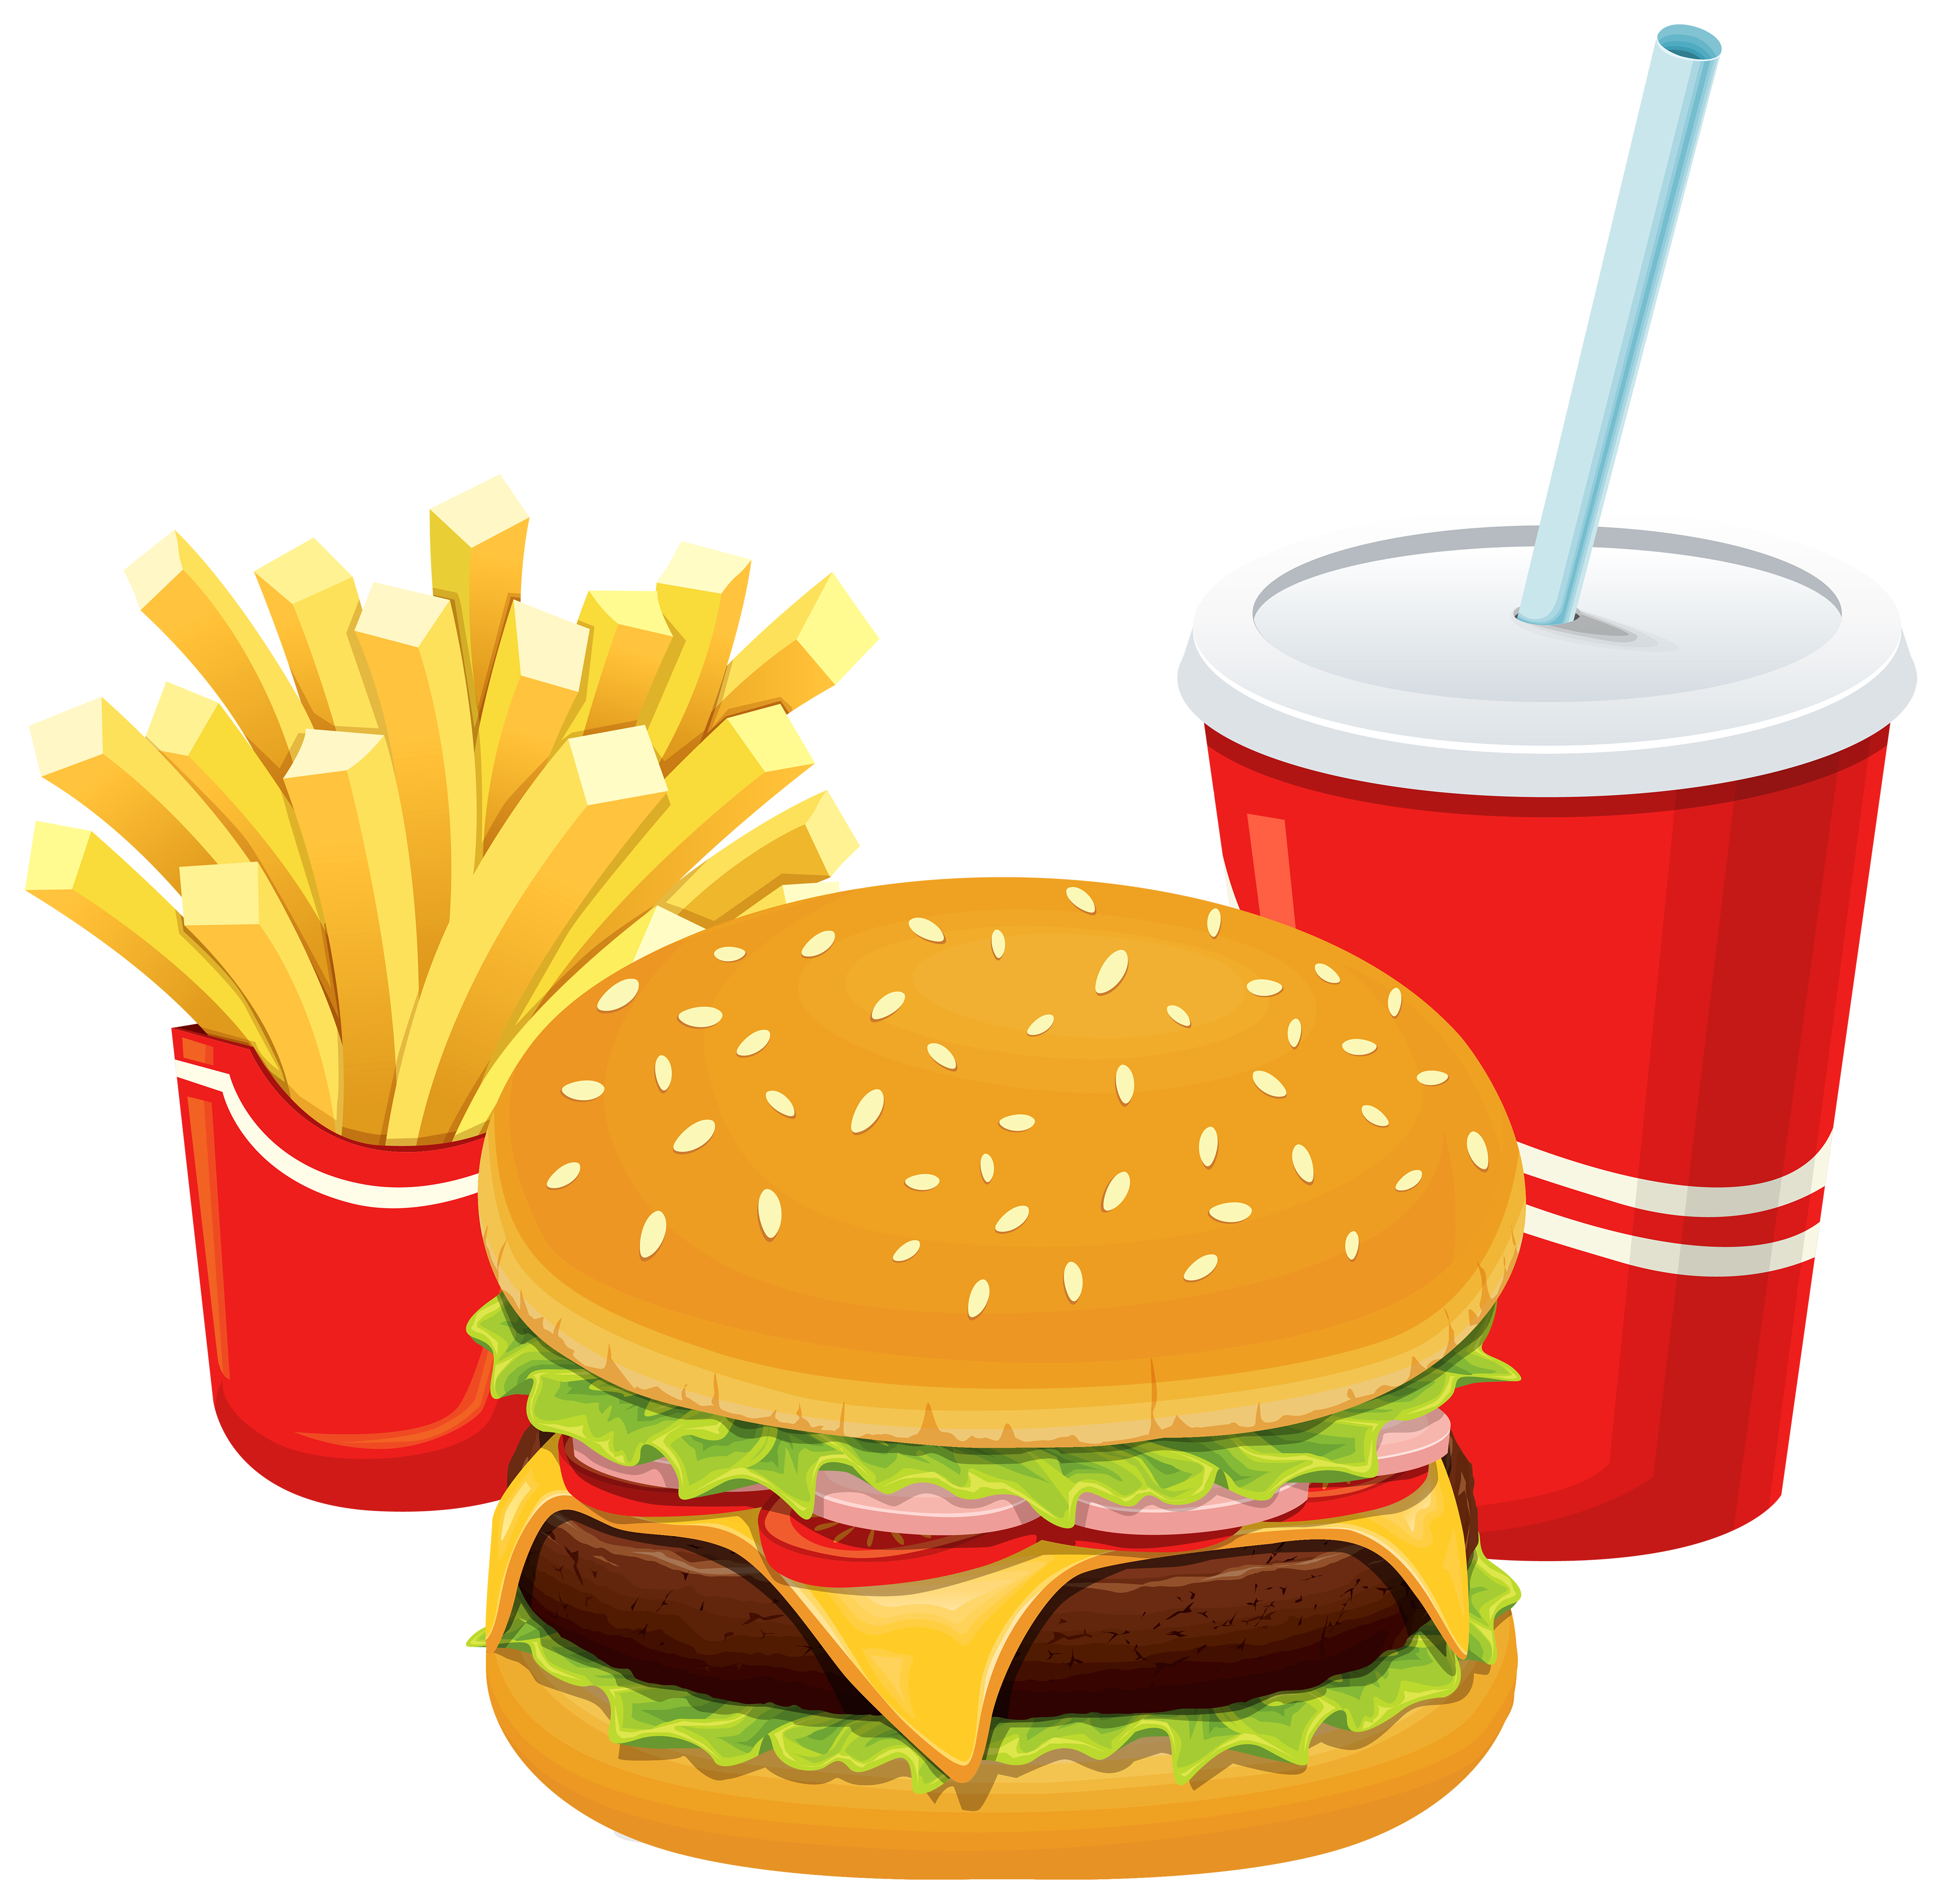 svg stock Junk clipart unhealthy diet. Hamburger fries and cola.